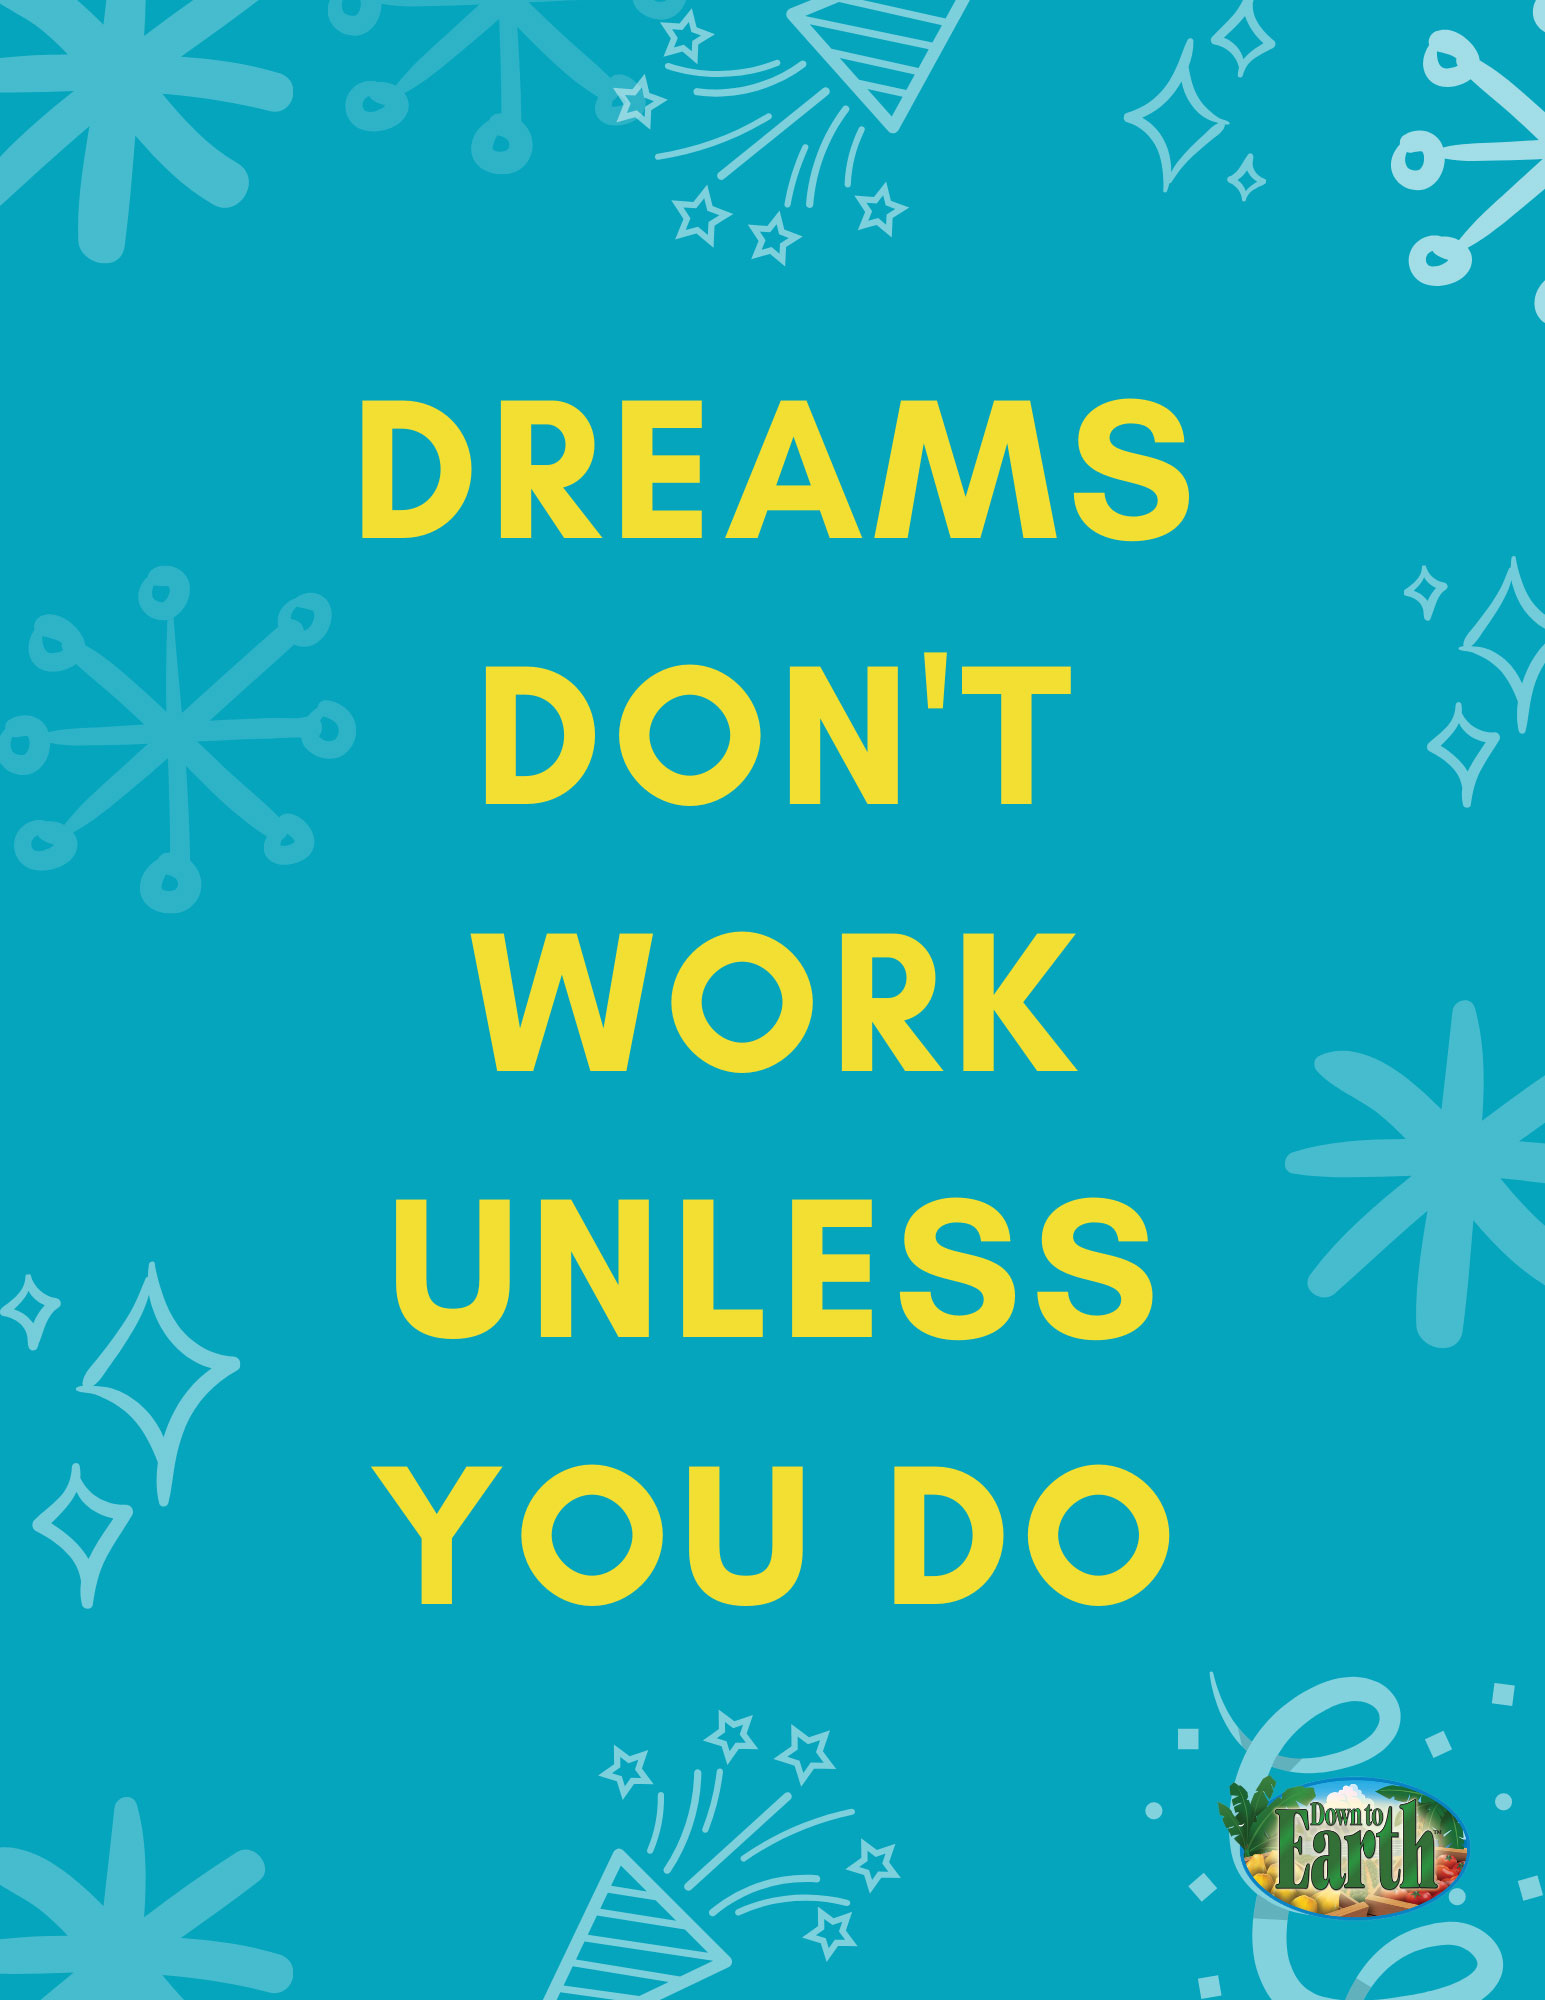 Dreams don't work unless you do. Down to Earth